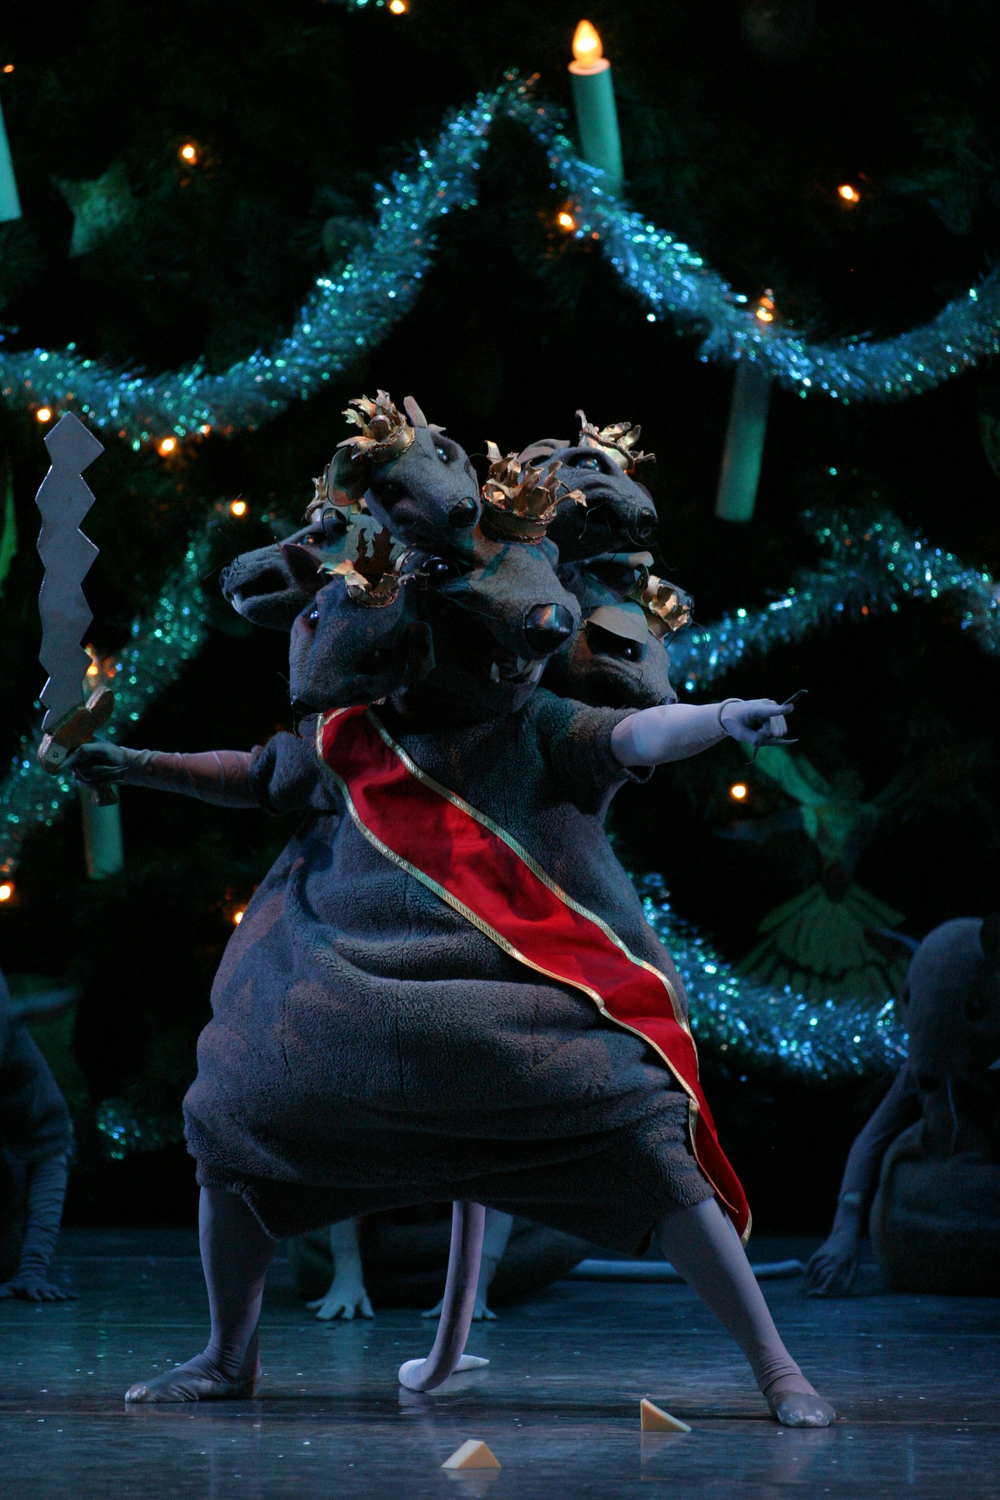 Nutcracker-Mouse-King-C19682-15.jpg